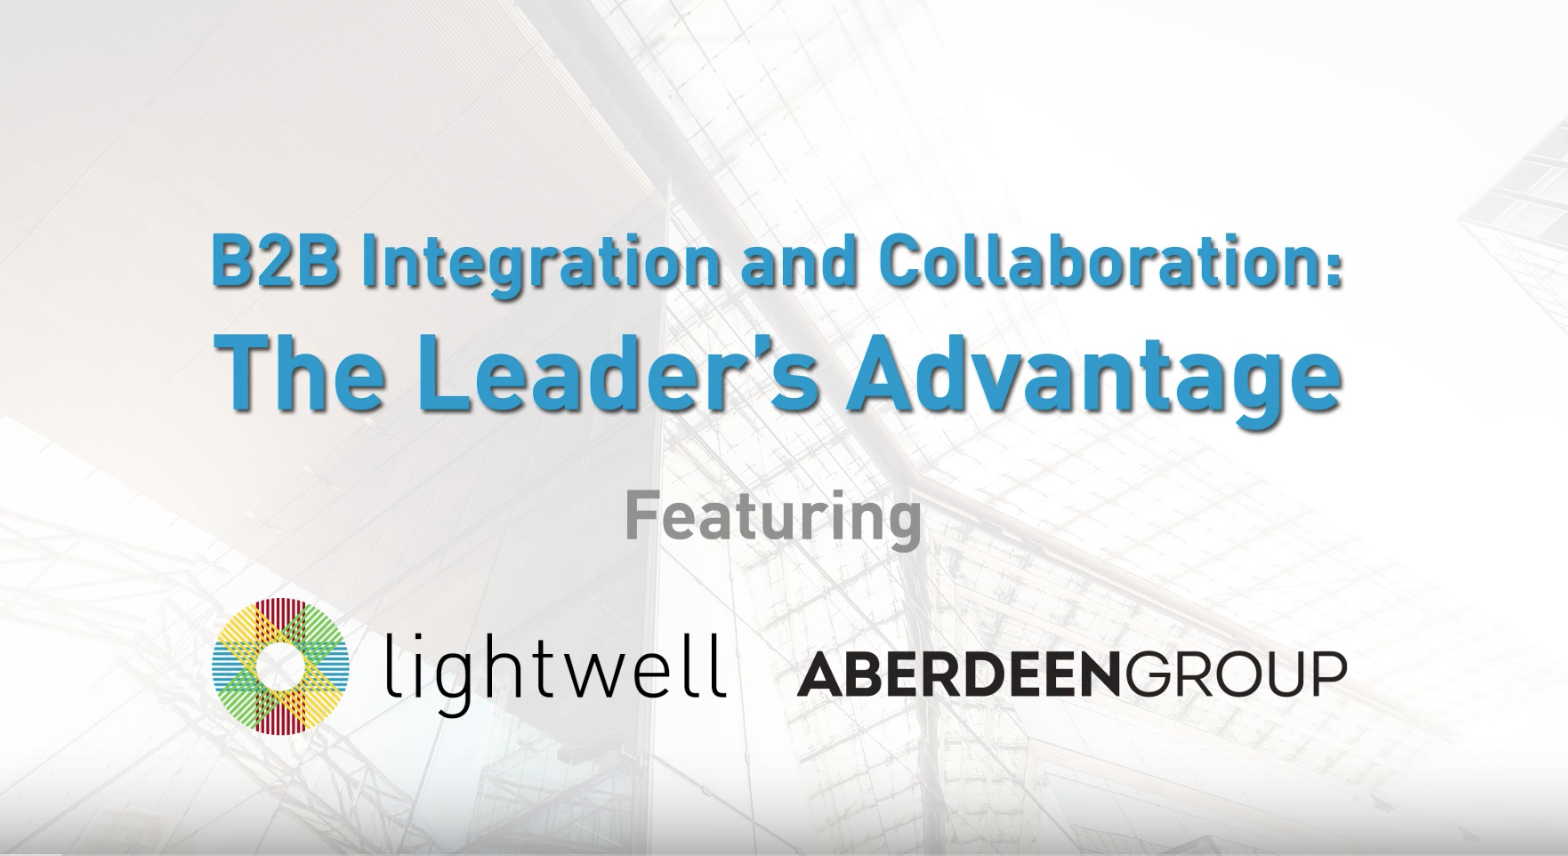 B2B Integration and Collaboration: The Leader's Advantage